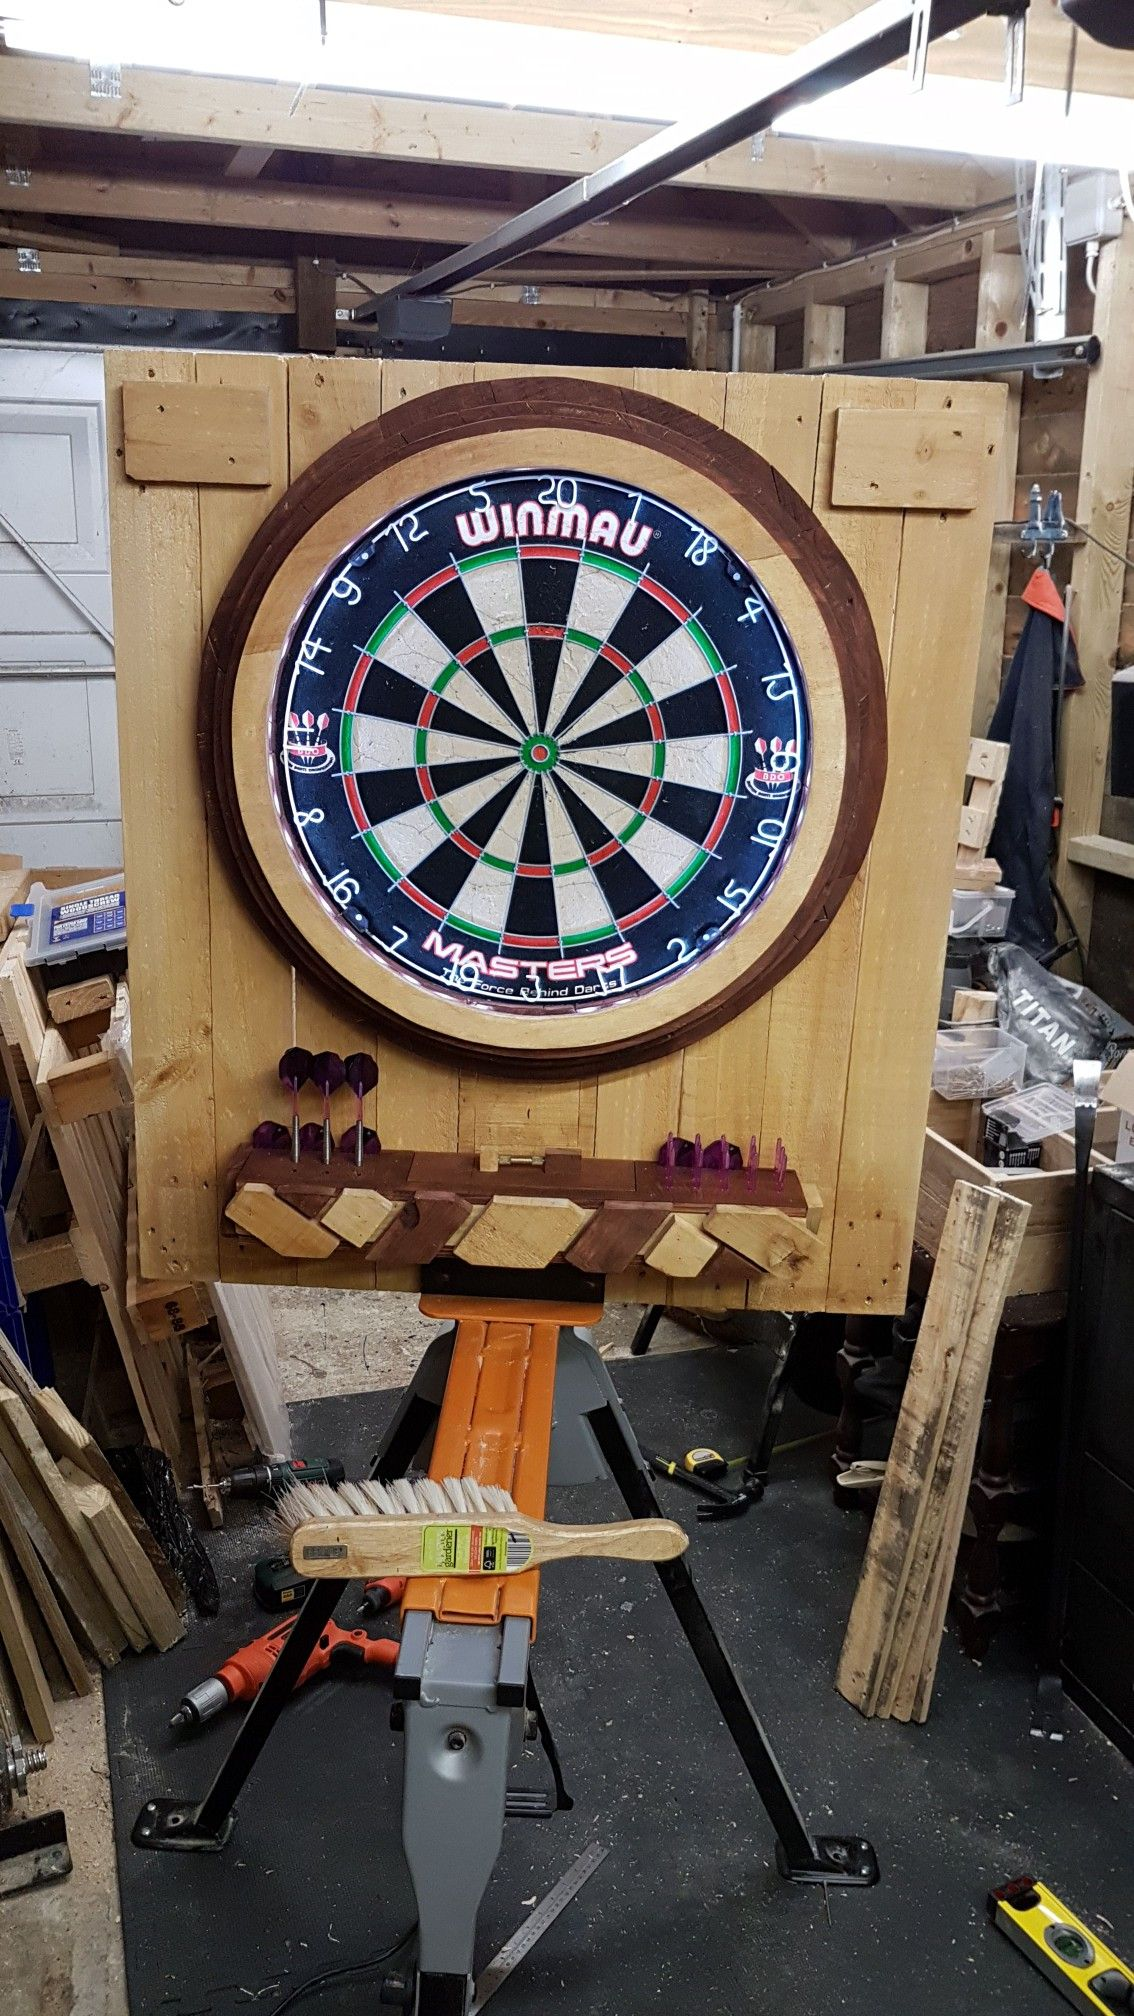 Pin Von Steve Allen Auf Pallet Wood Dartboard With Led Ring Light